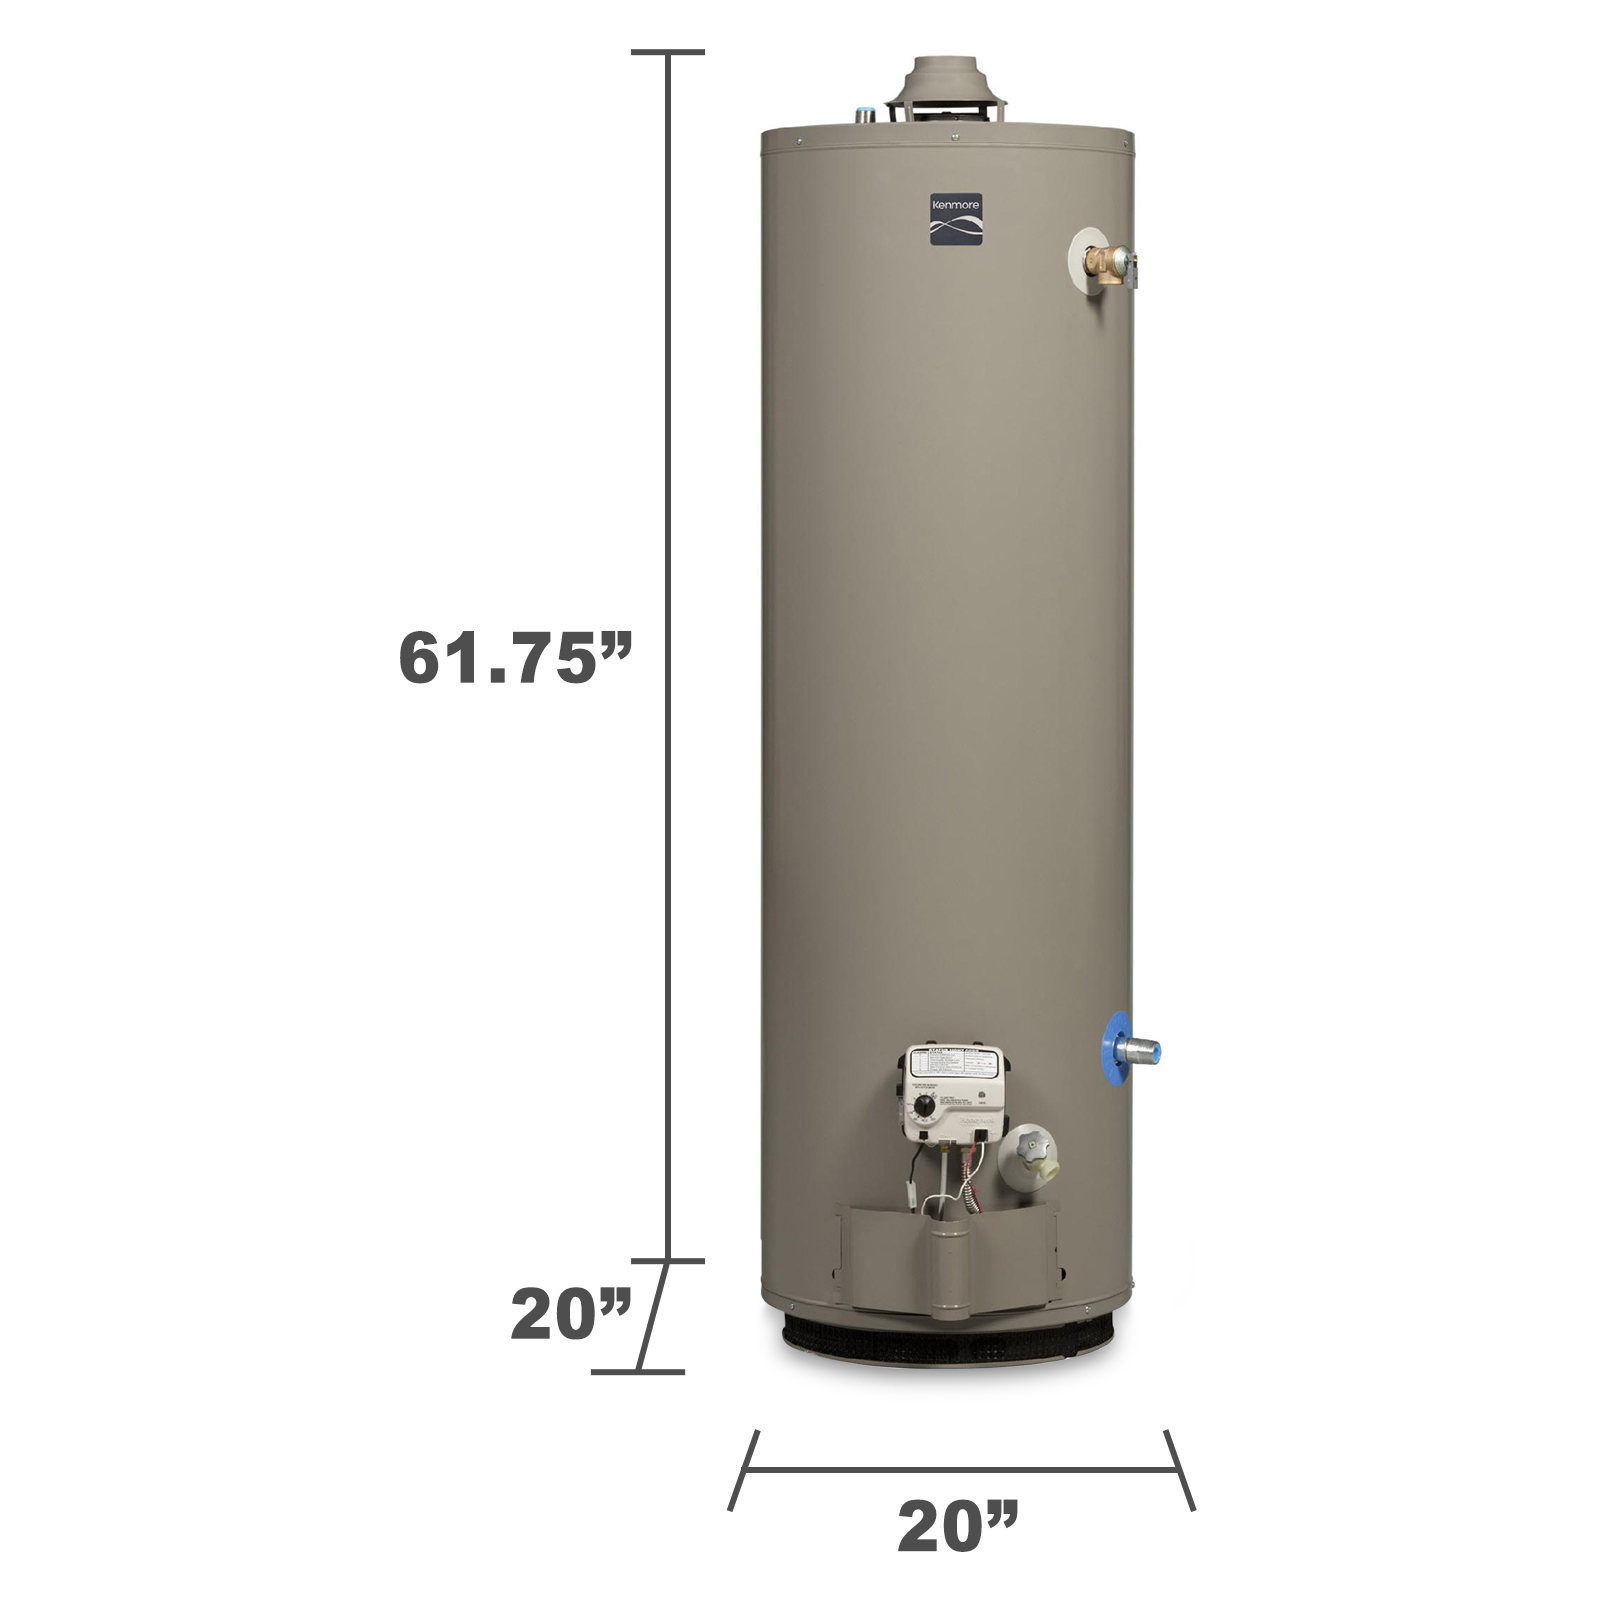 Kenmore 33694 40 gal. Mobile Home Natural/Propane Gas Water Heater